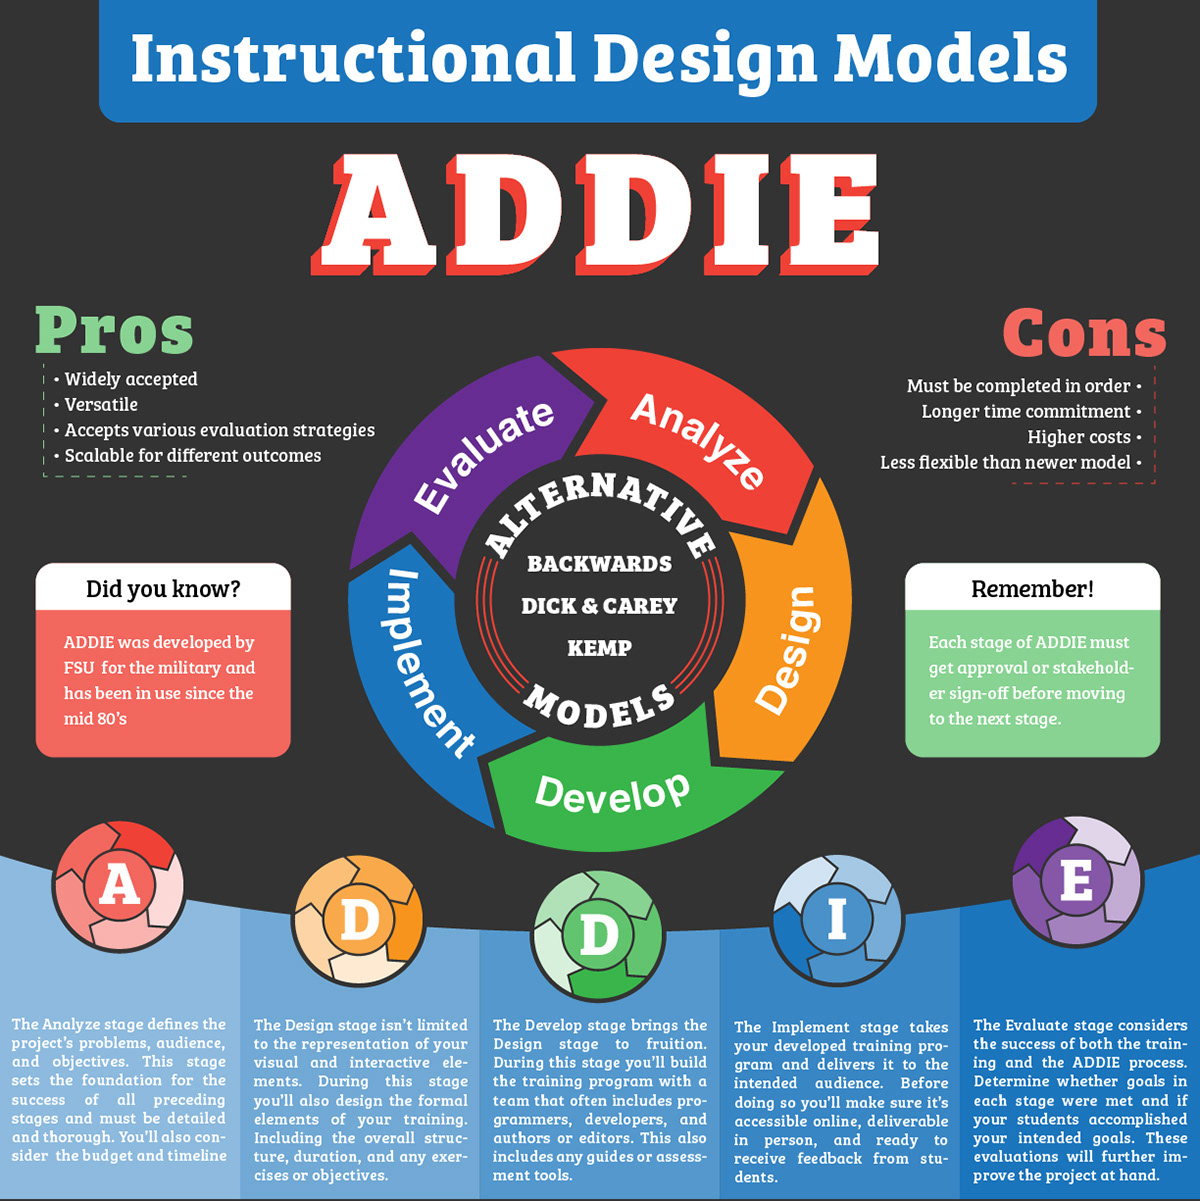 succeed an instructional design model Prescriptive models provide guidelines or frameworks to organize and structure the process of creating instructional activities these models can be used to guide your approach to the art or science (your choice) of instructional design the following are commonly accepted prescriptive design models.